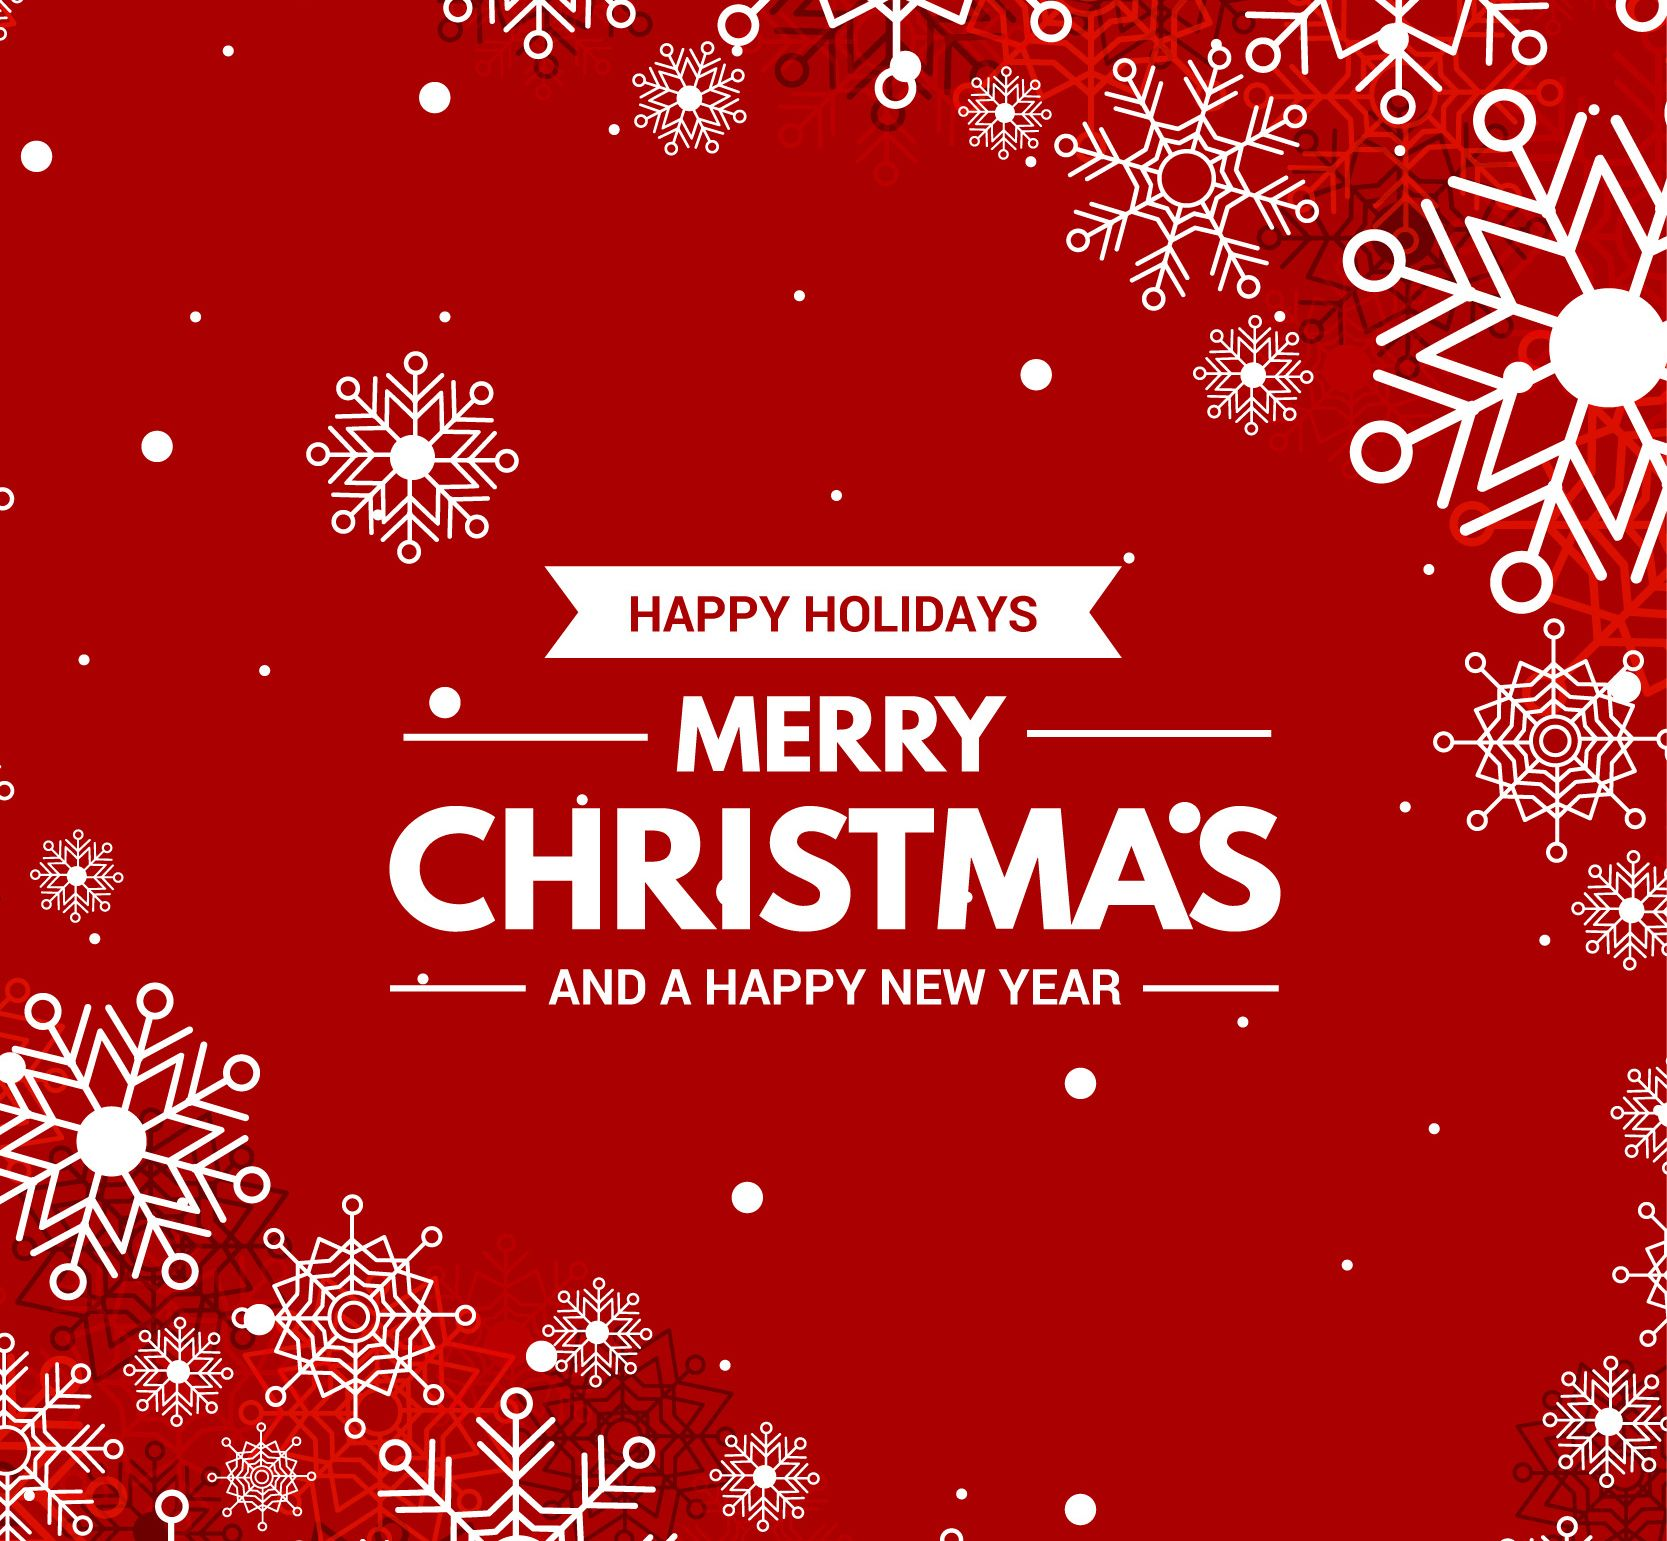 free christmas images free merry christmas images free christmas pictures free merry christmas pictures free christmas quotes free christmas messages